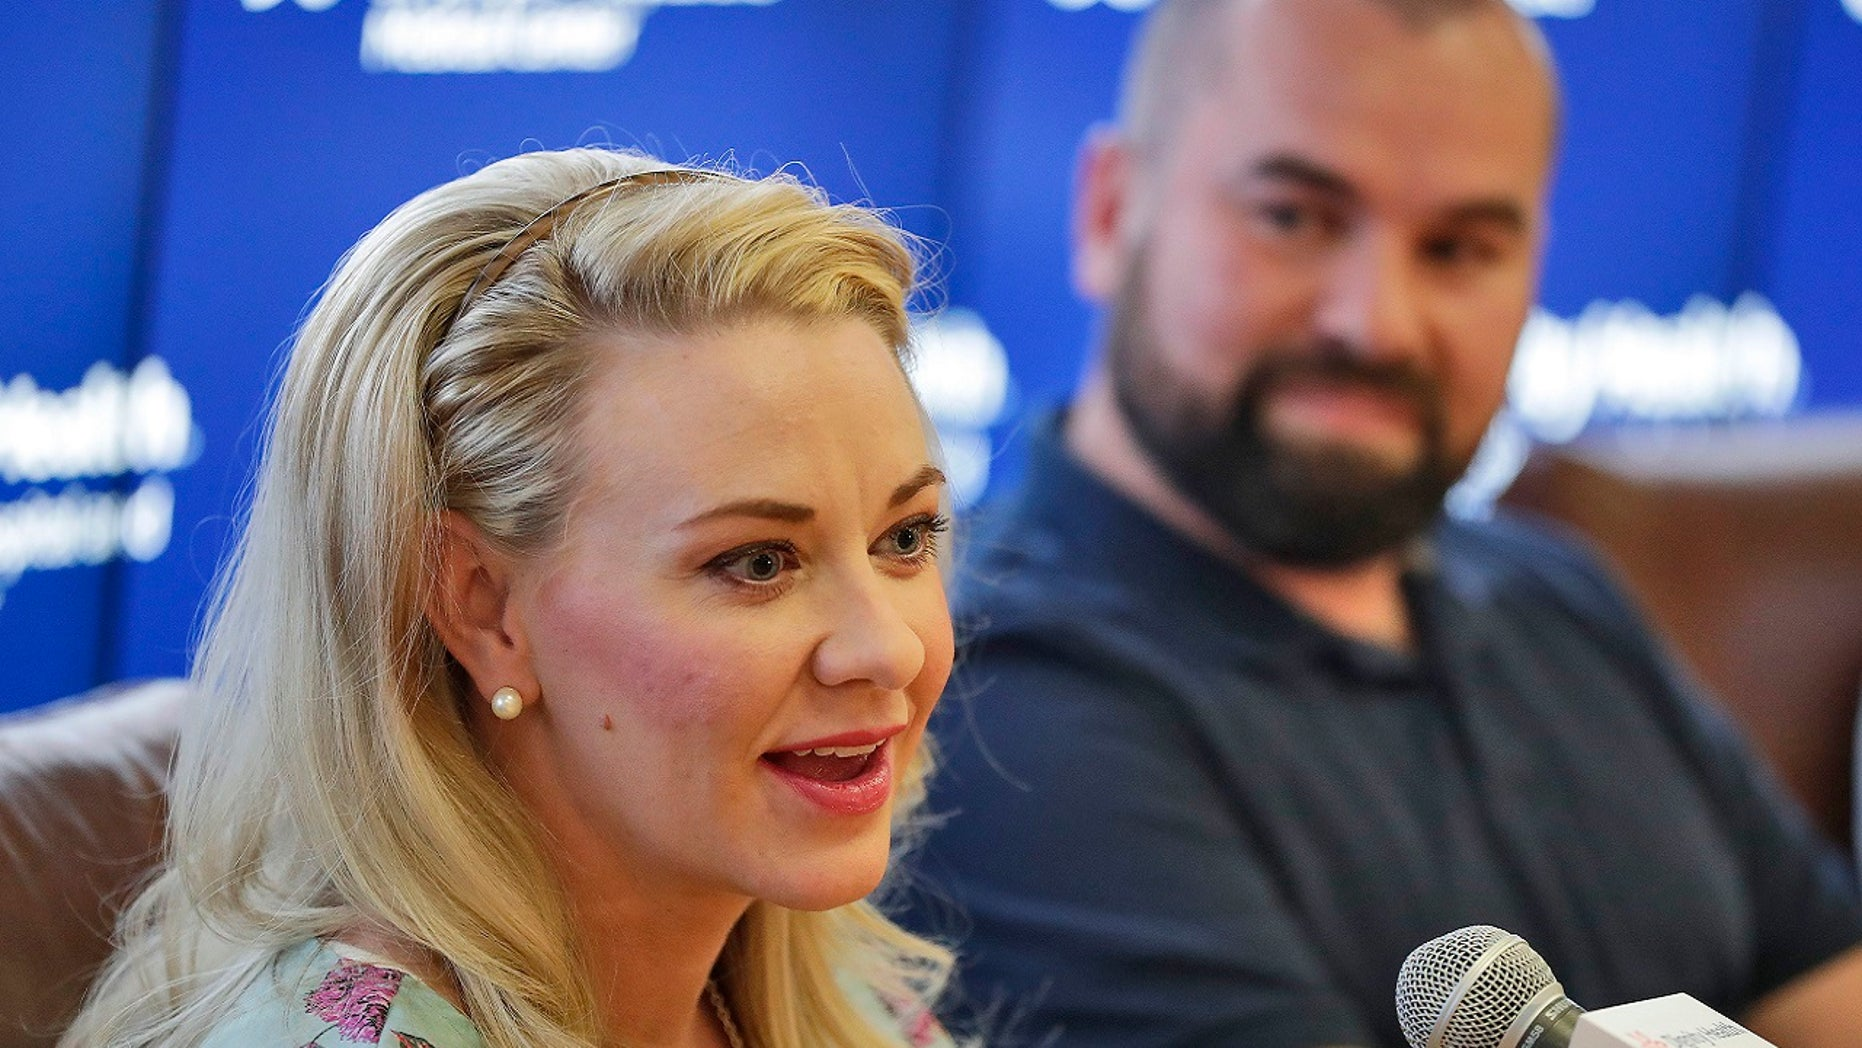 Jamie Scott speaks accompanied by her husband, Skyler, during a news conference at St. Joseph's Hospital and Medical Center in Phoenix on Friday, April 6, 2018. Jamie gave birth to quintuplets on March 21, 2018.